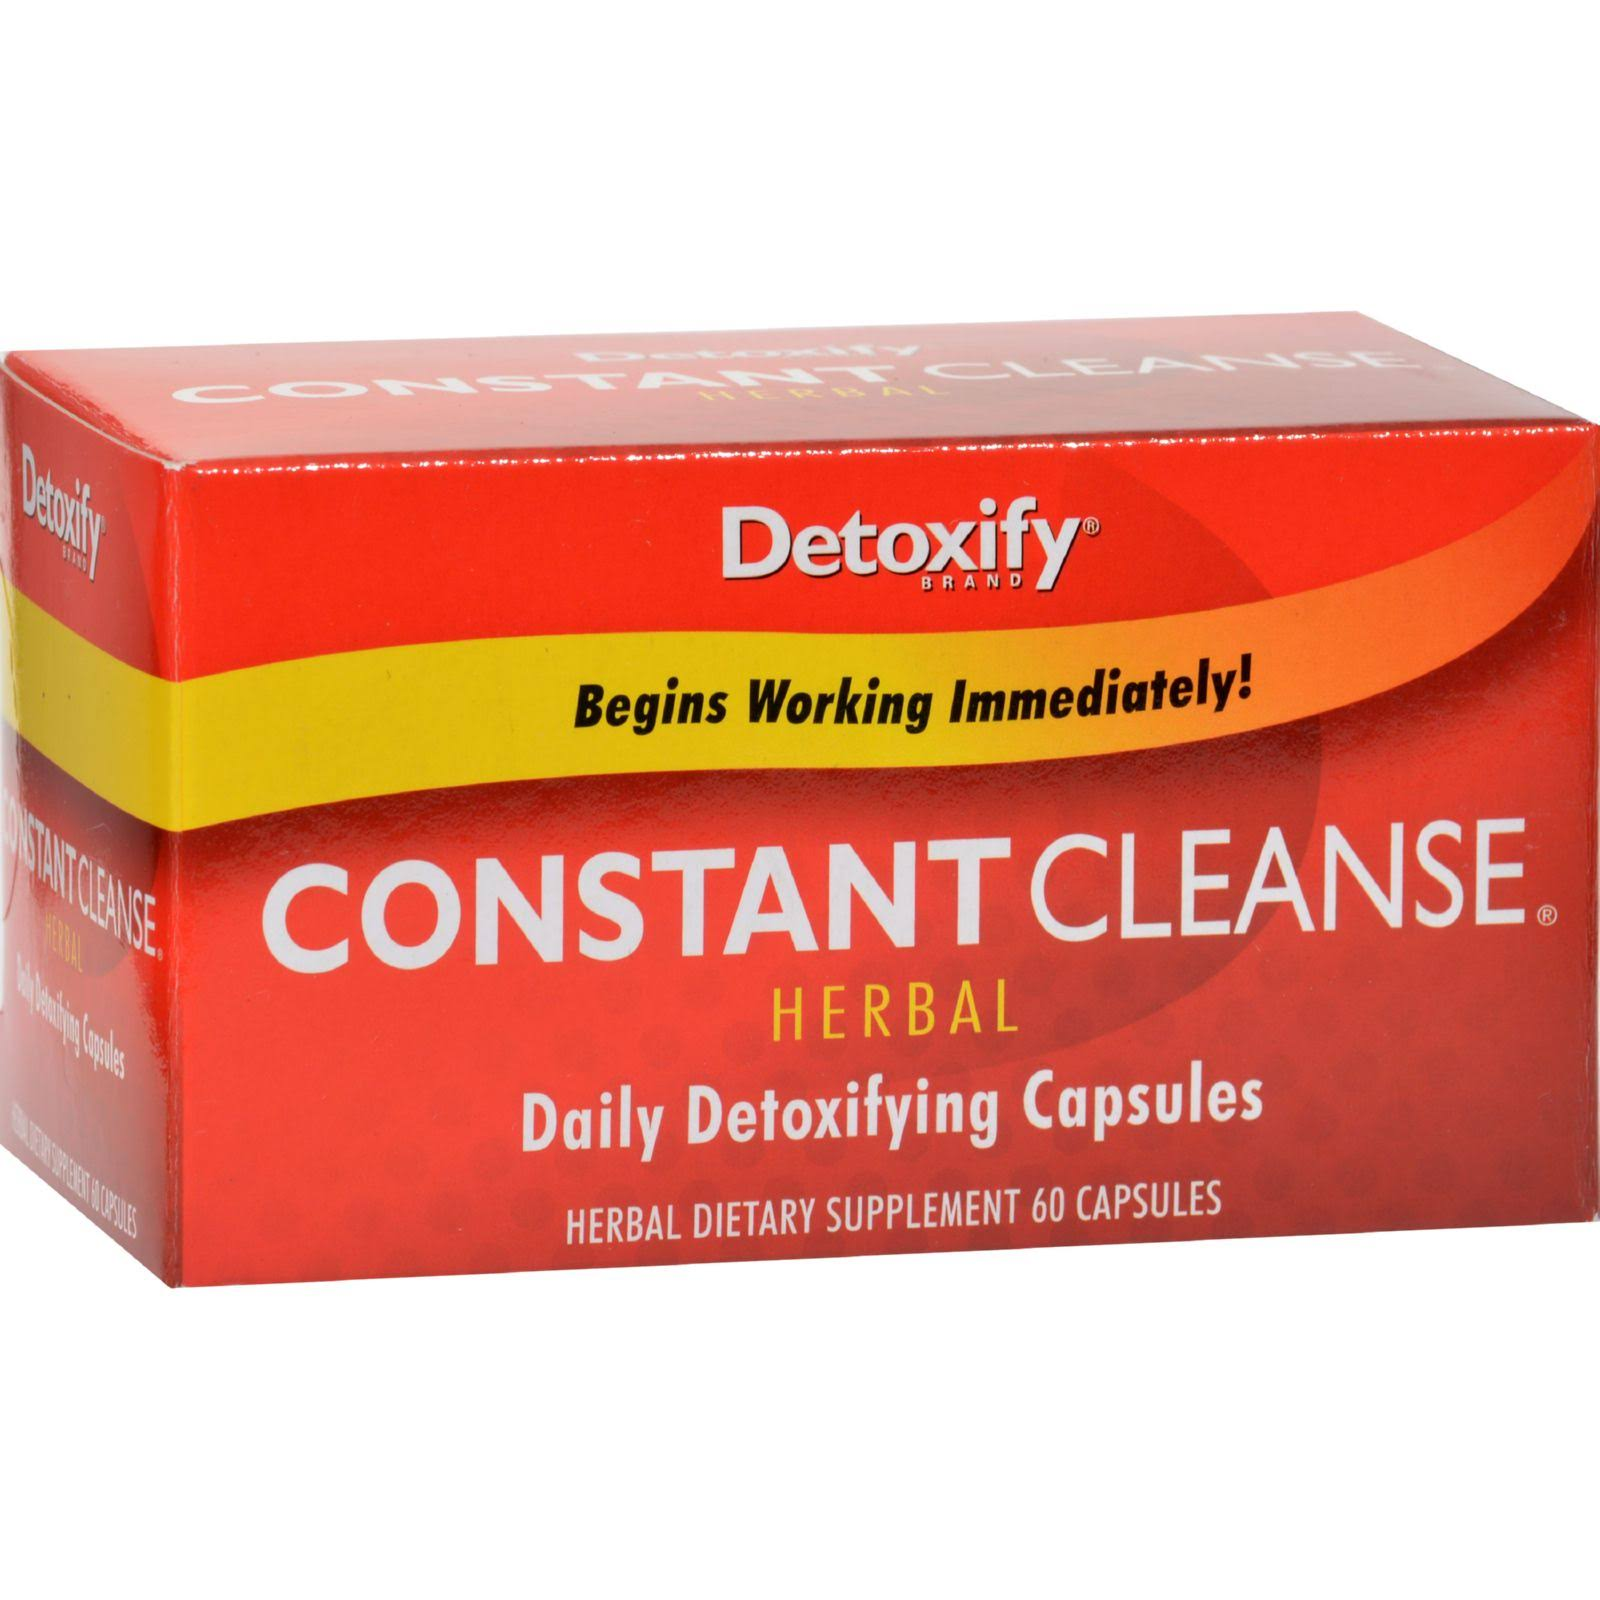 Detoxify Constant Cleanse Herbal - 60Caps